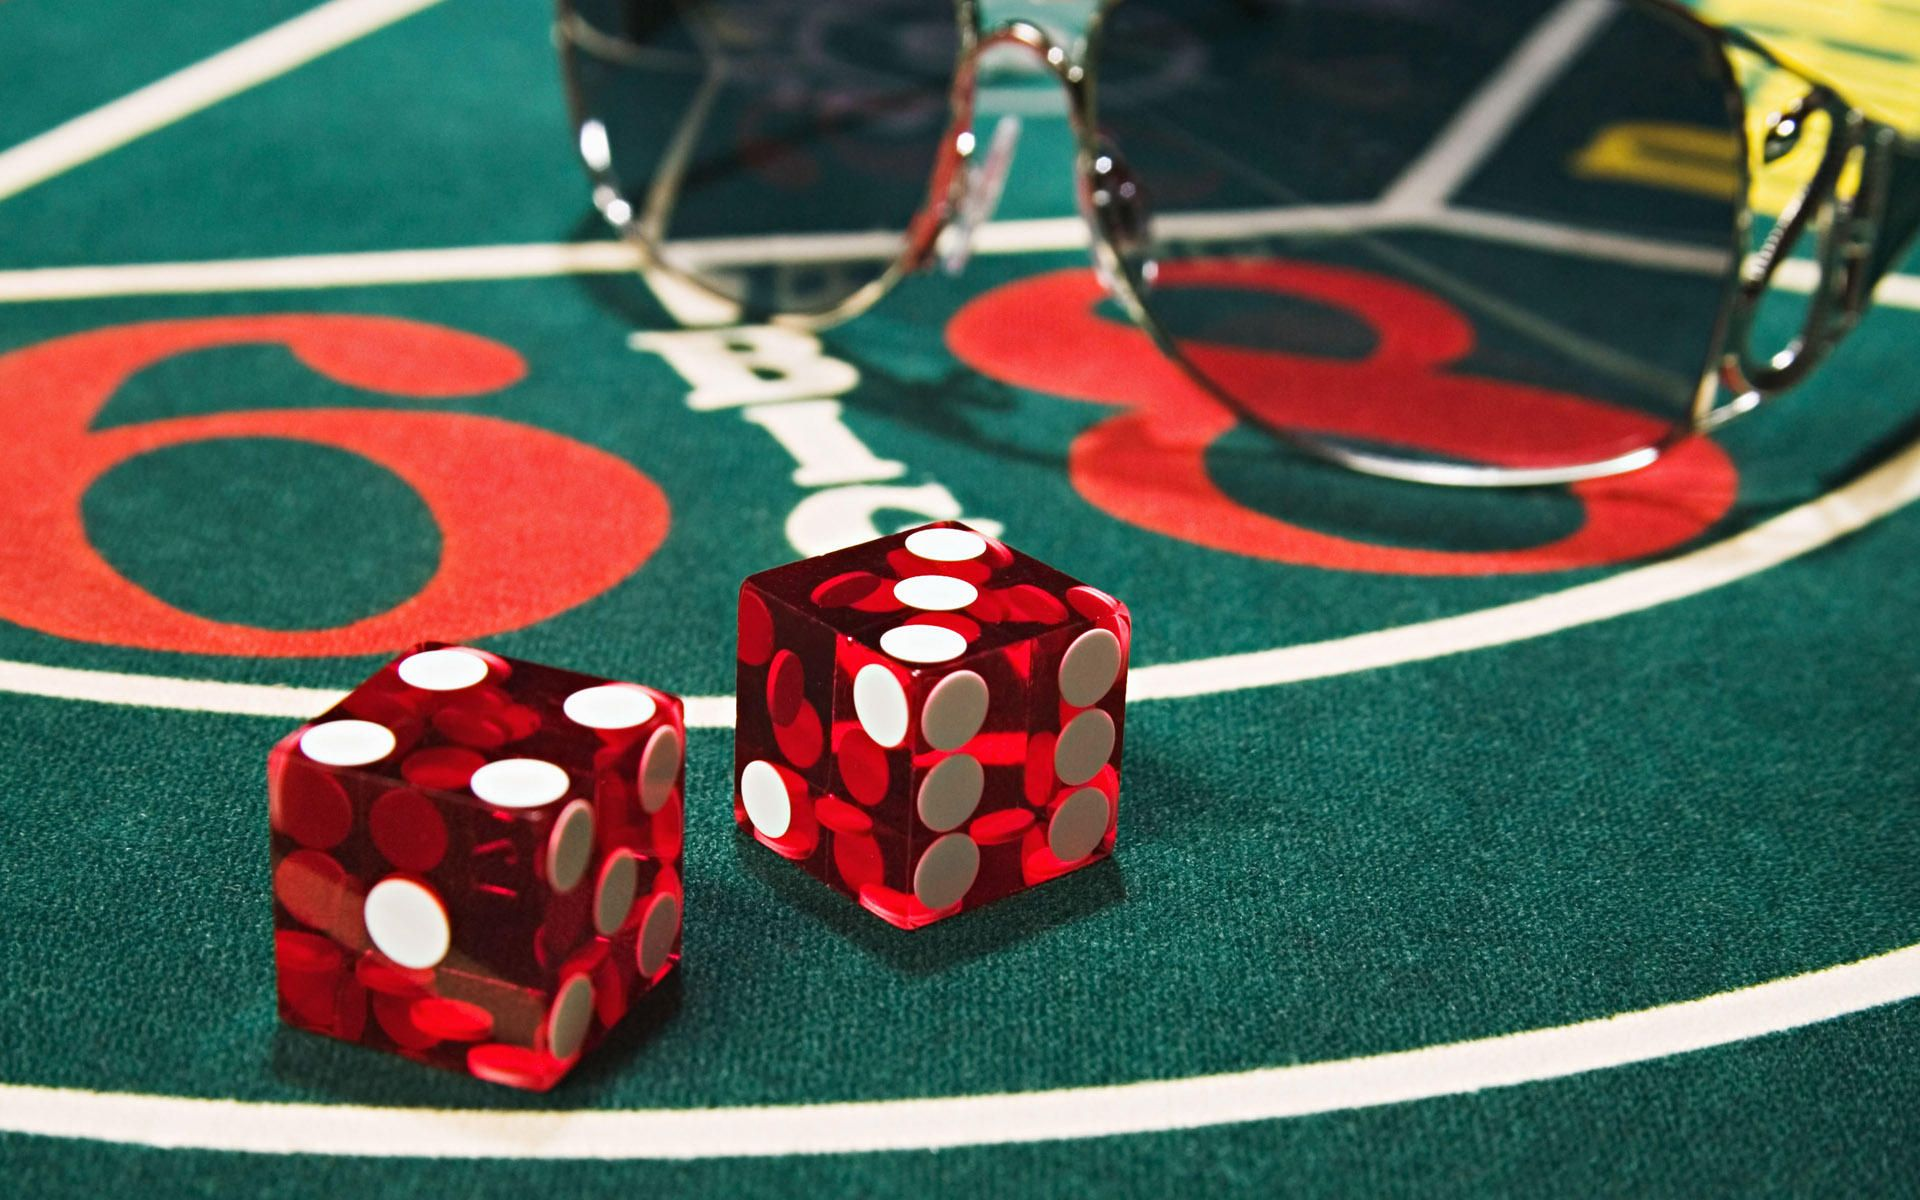 Instructional Take a look at What Casino Game Does In Our World